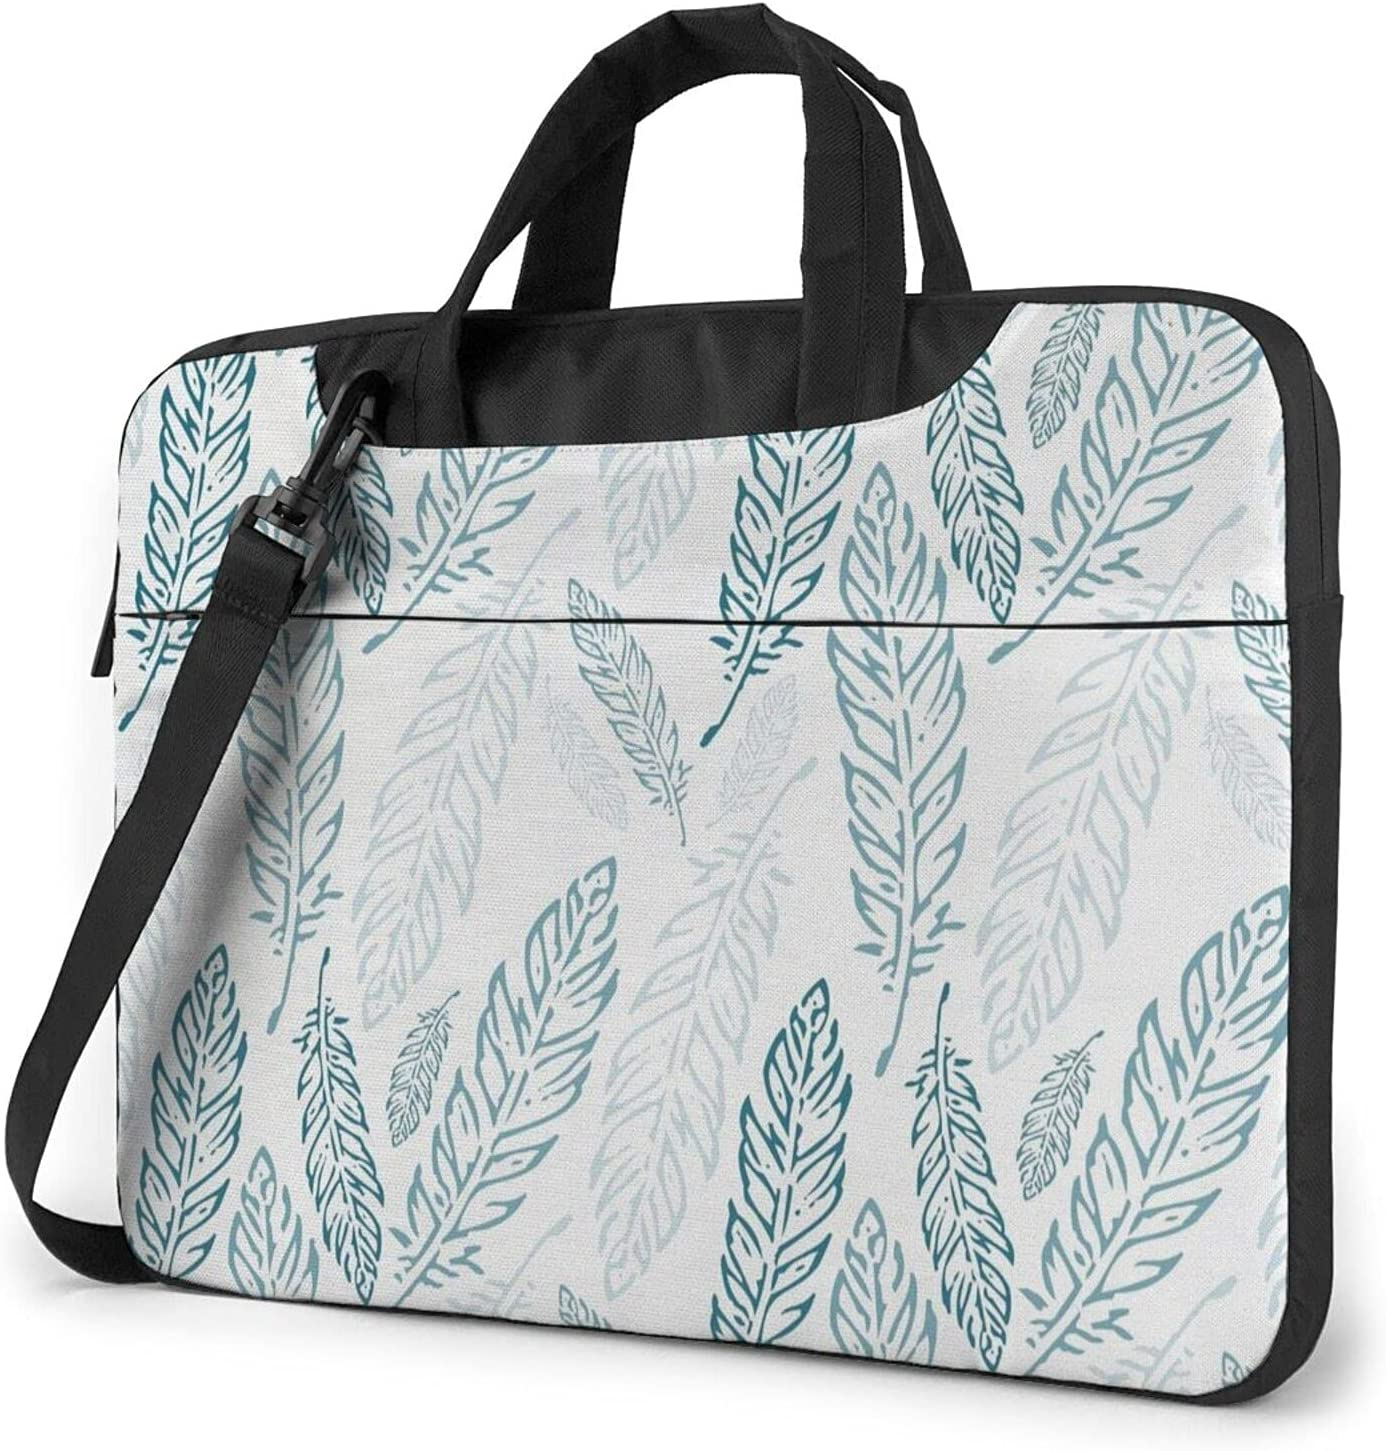 Feather Clearance SALE Limited time Light Classic Max 44% OFF Slim Briefcase Crossbody Shoulder Bag Des